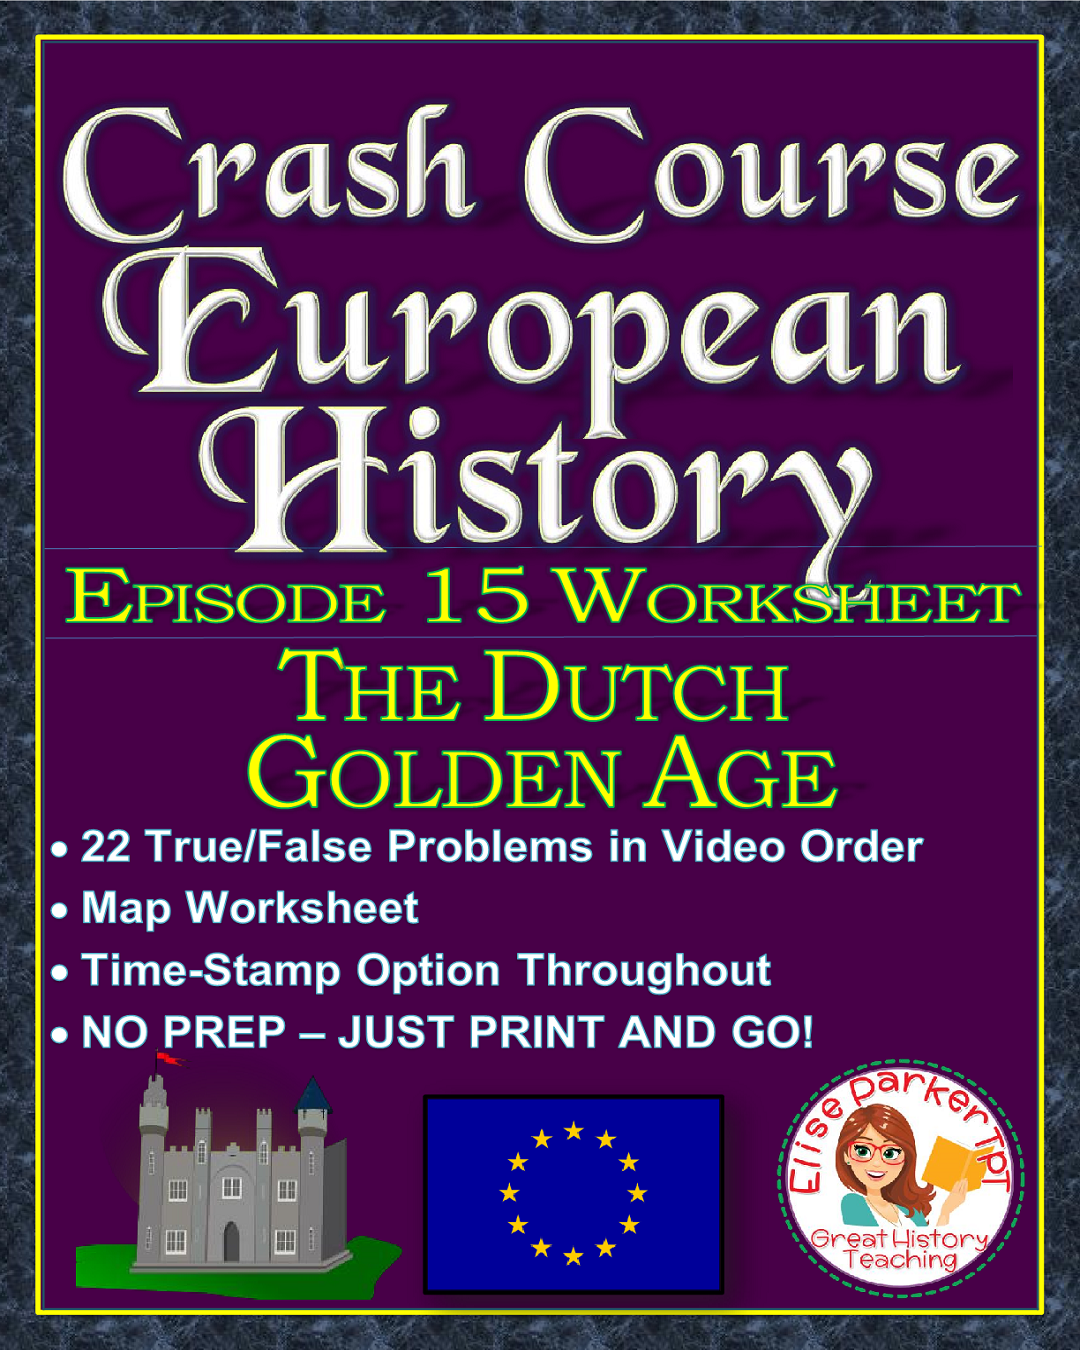 Crash Course European History Worksheet Episode 15